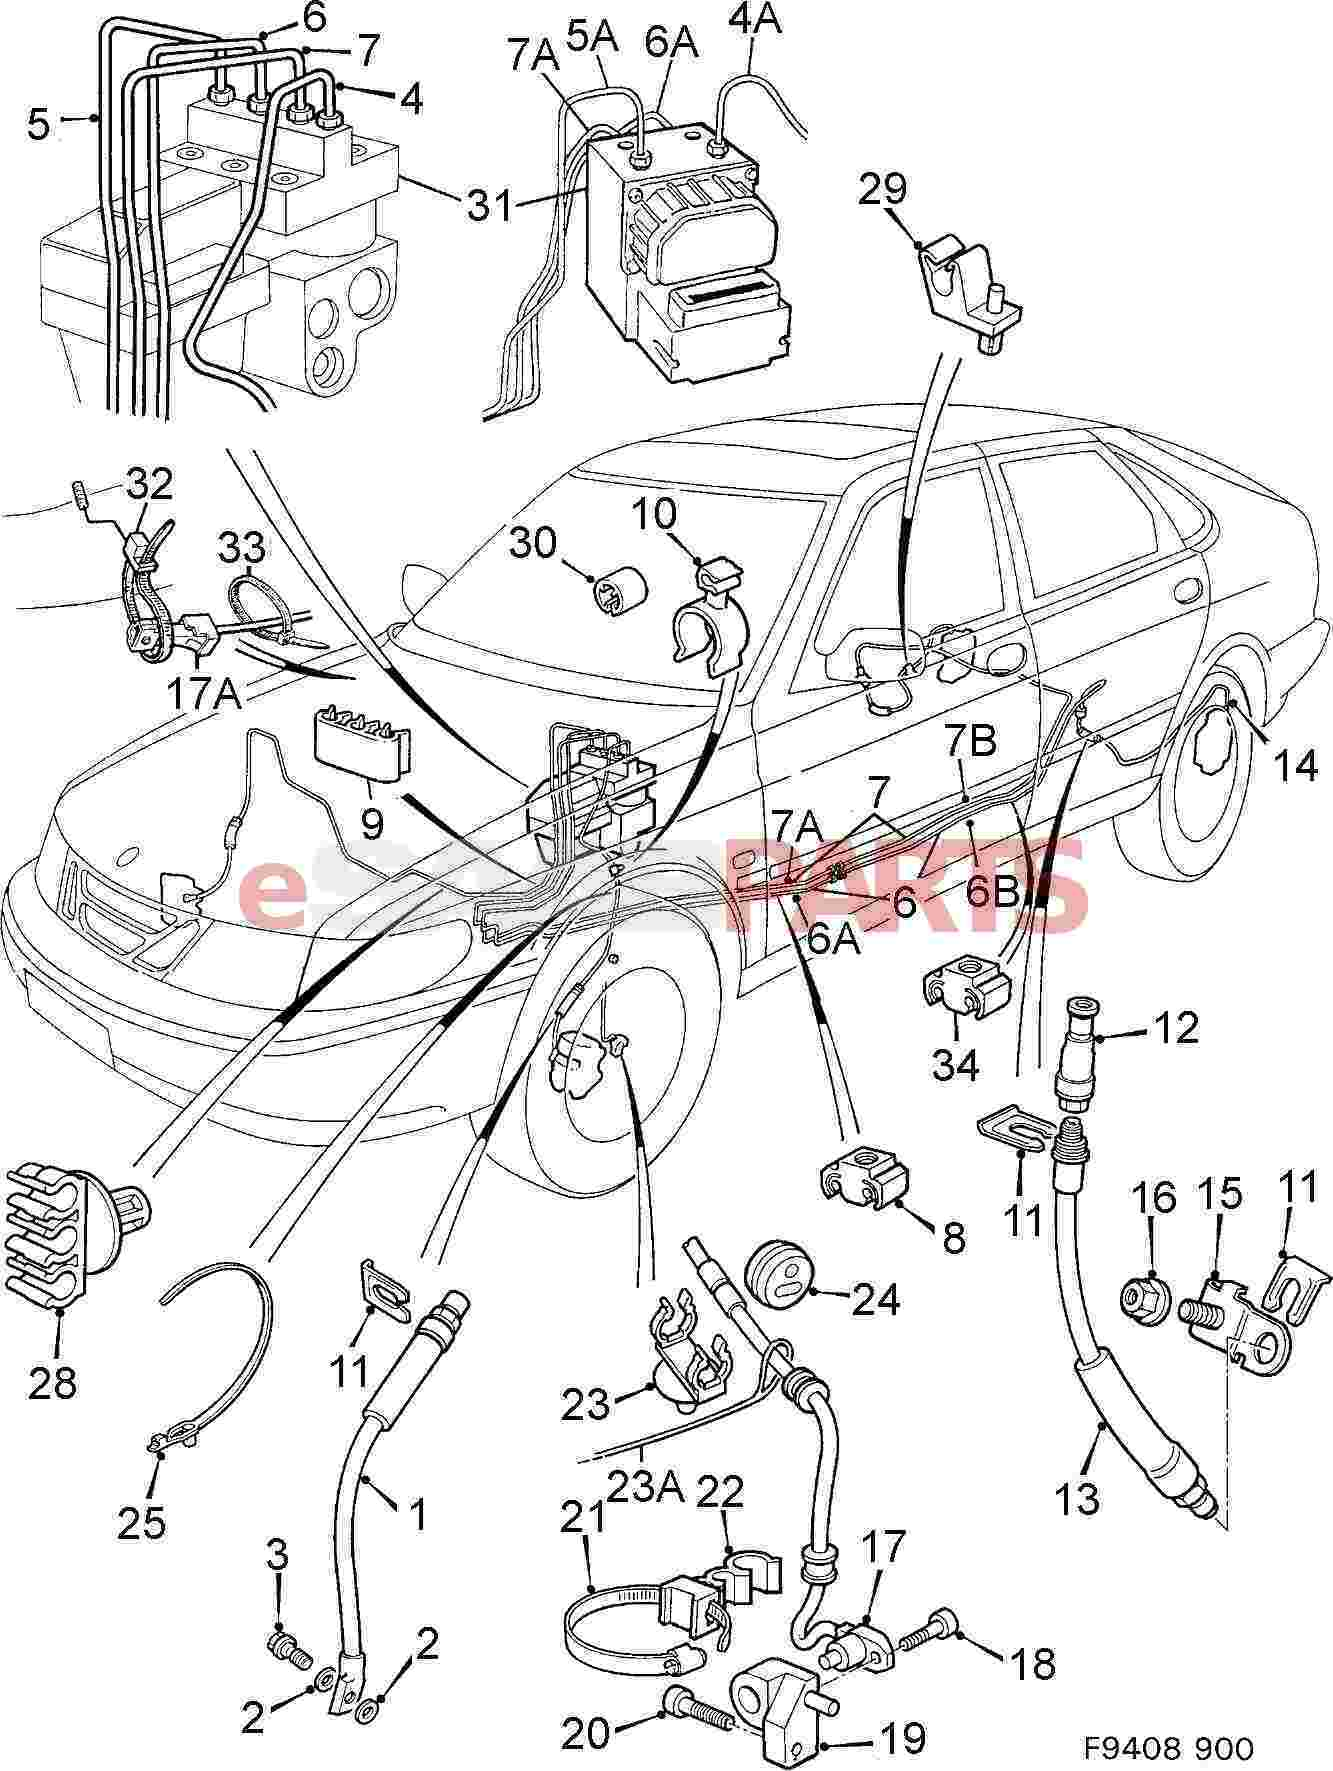 service manual  1992 saab 900 diagram showing brake line